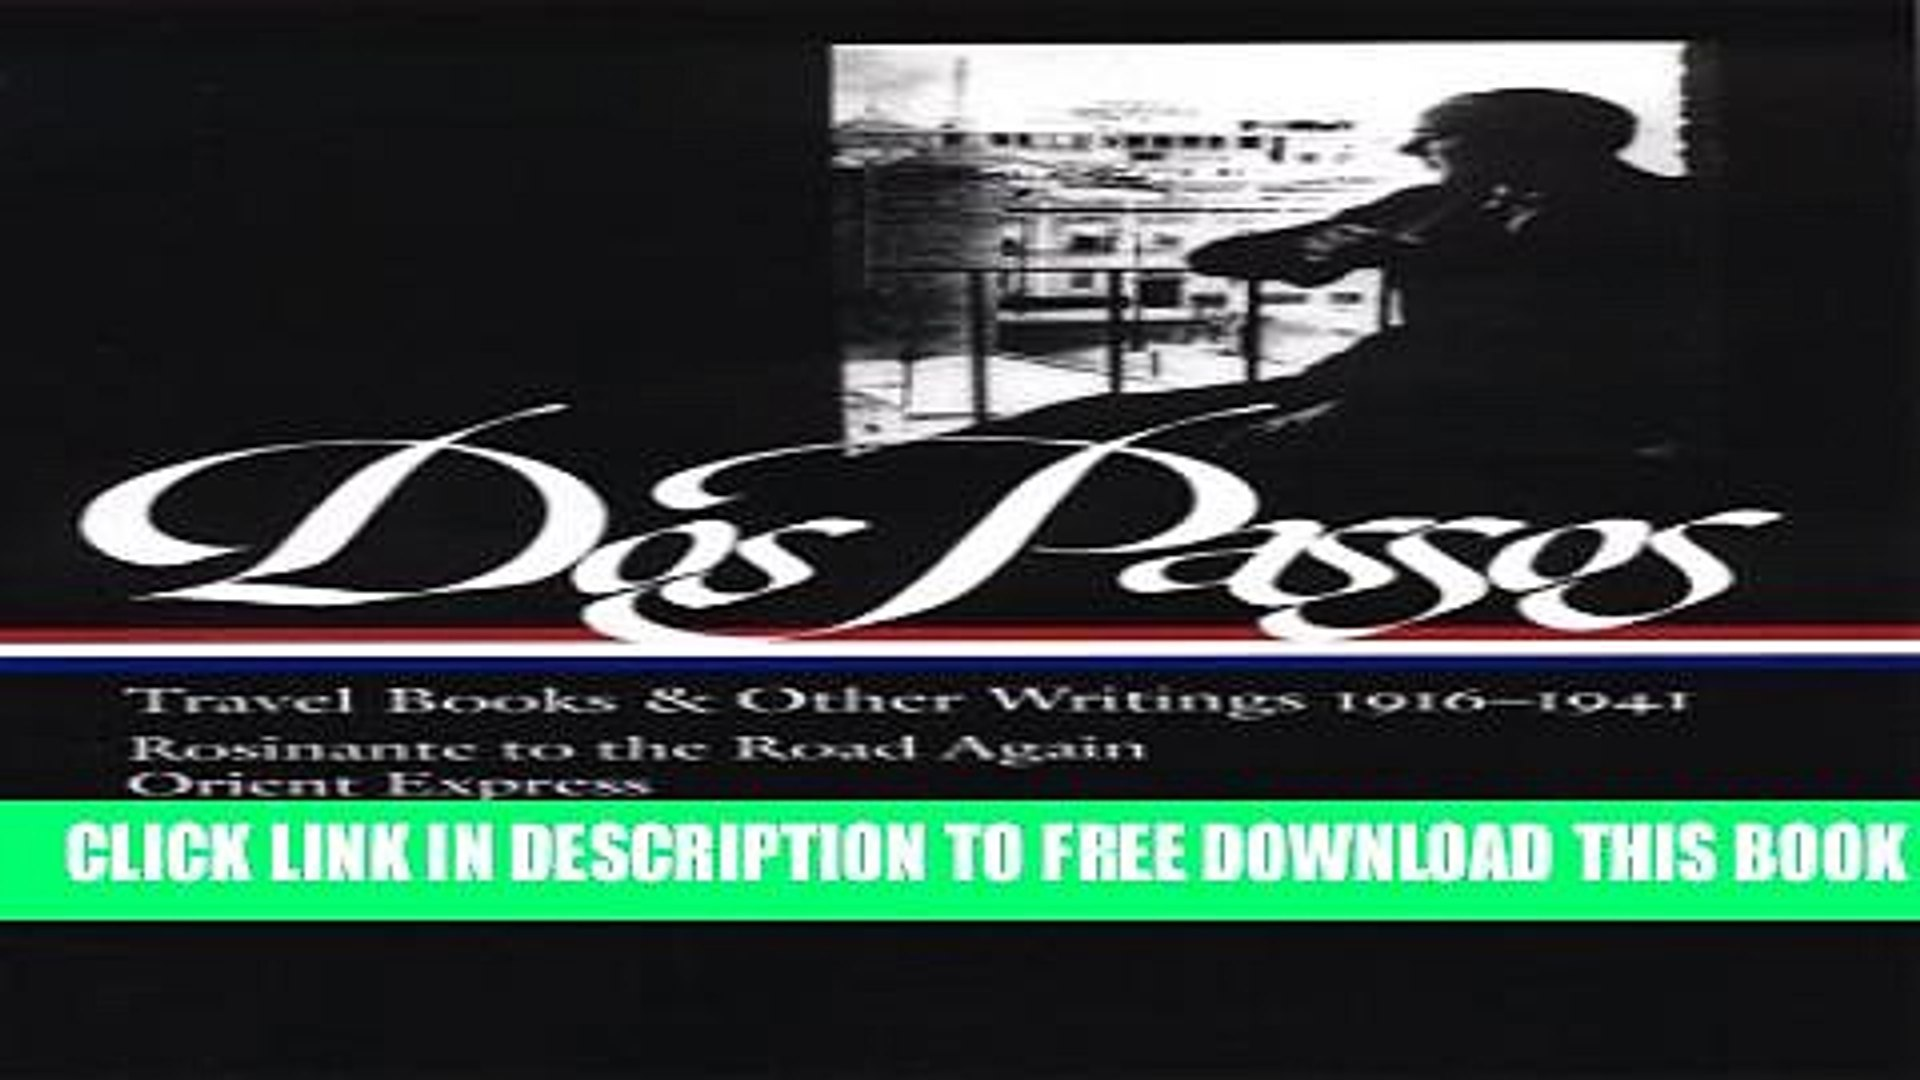 [PDF] John Dos Passos: Travel Books and Other Writings 1916-1941 Popular Online